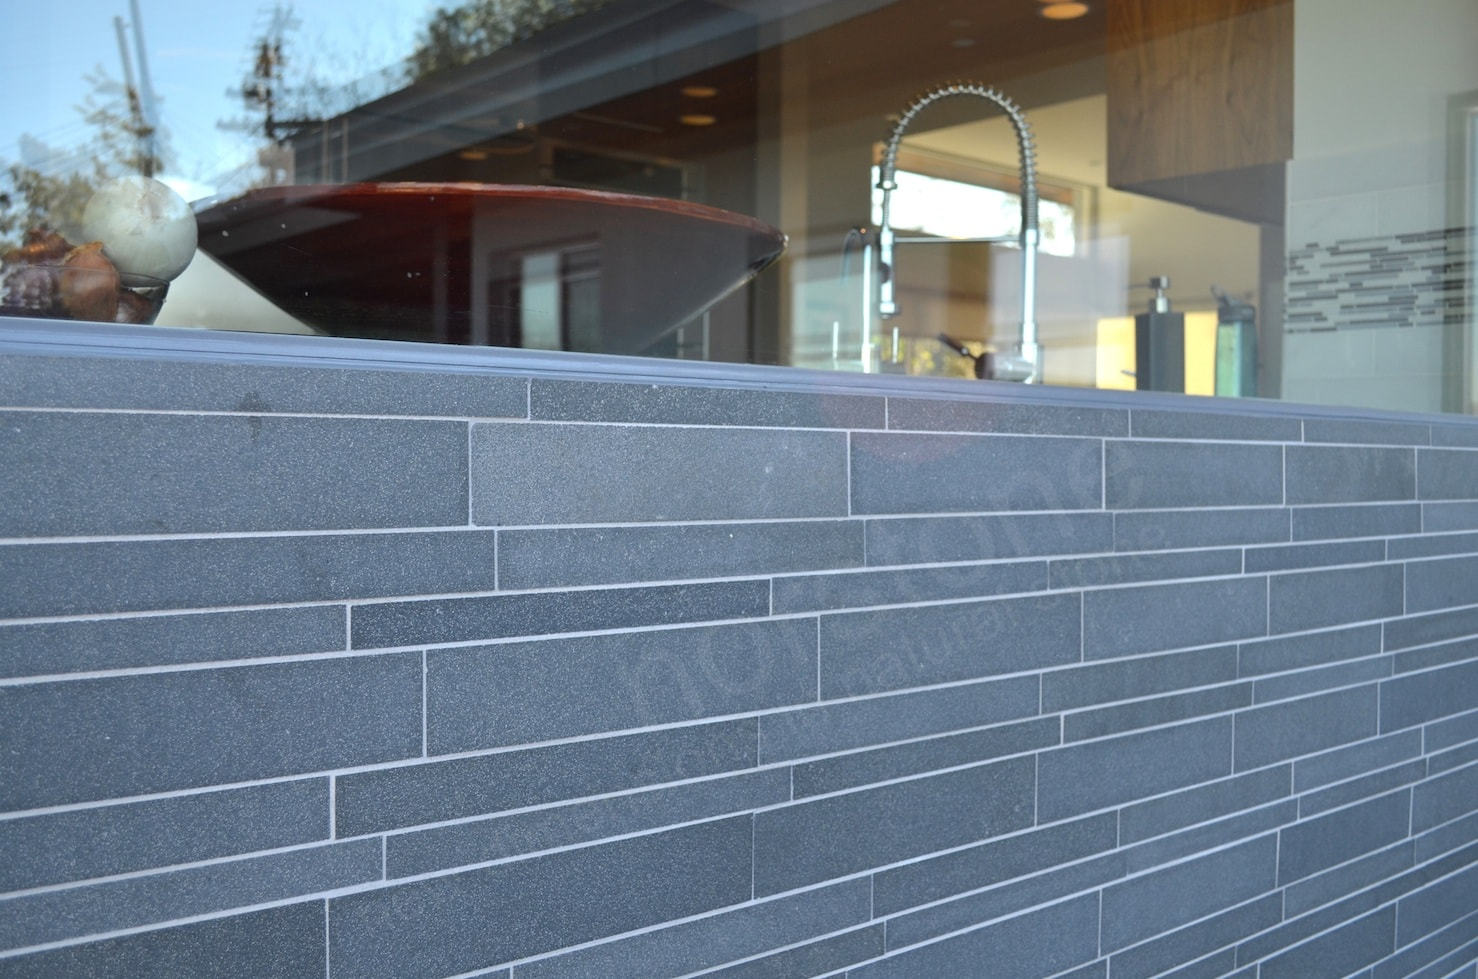 Norstone Grey Lynia Mosaic Wall Tile installed with a light color grout.